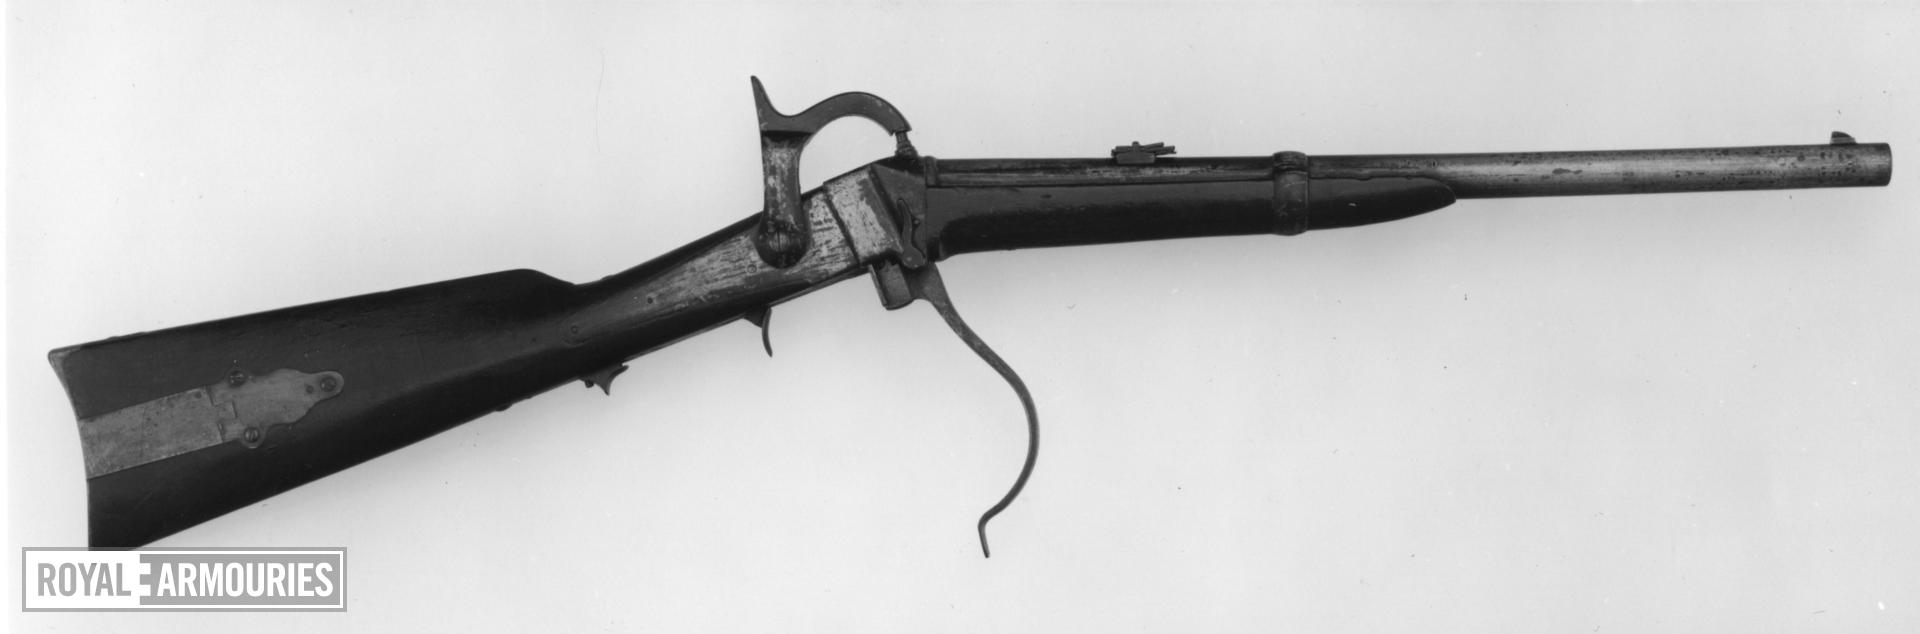 Percussion breech-loading military carbine - Sharps Model 1855